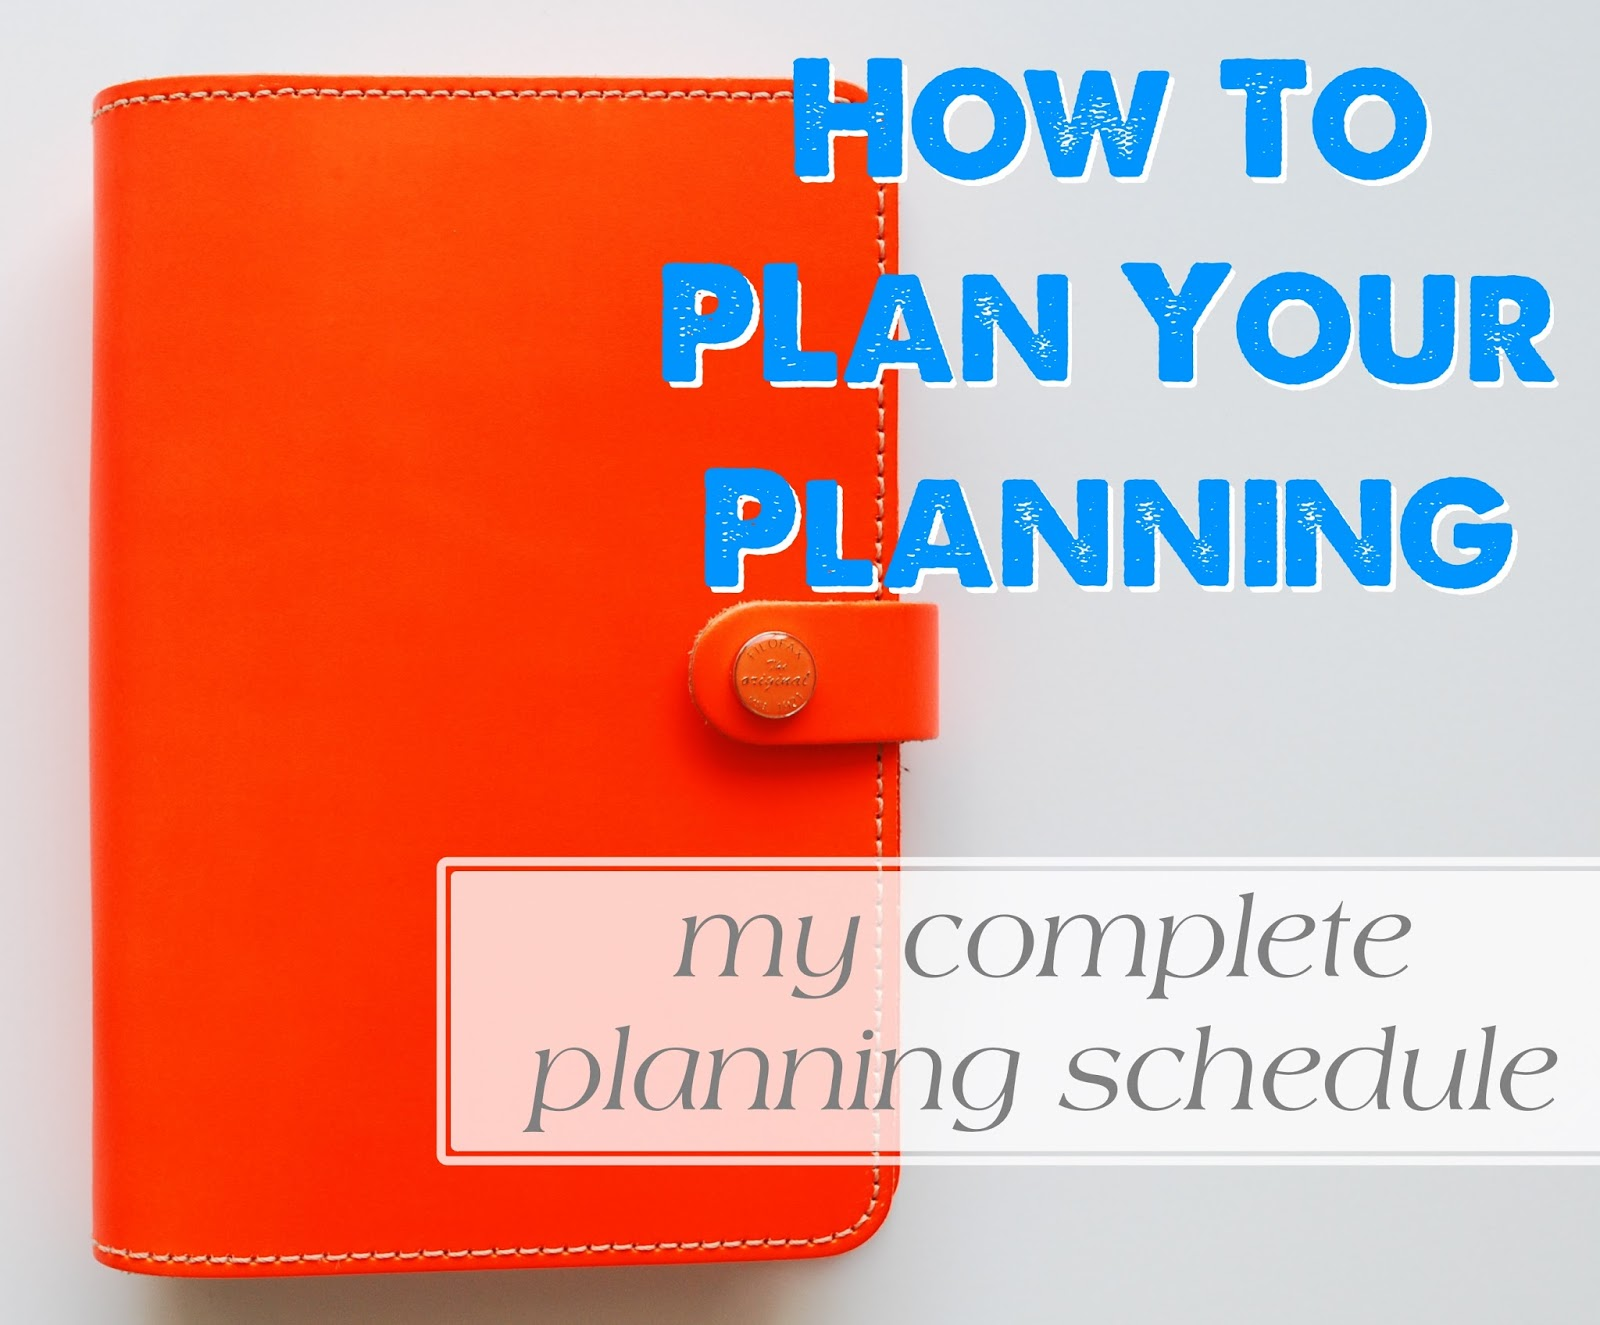 How to plan your planning and setup your planning routine